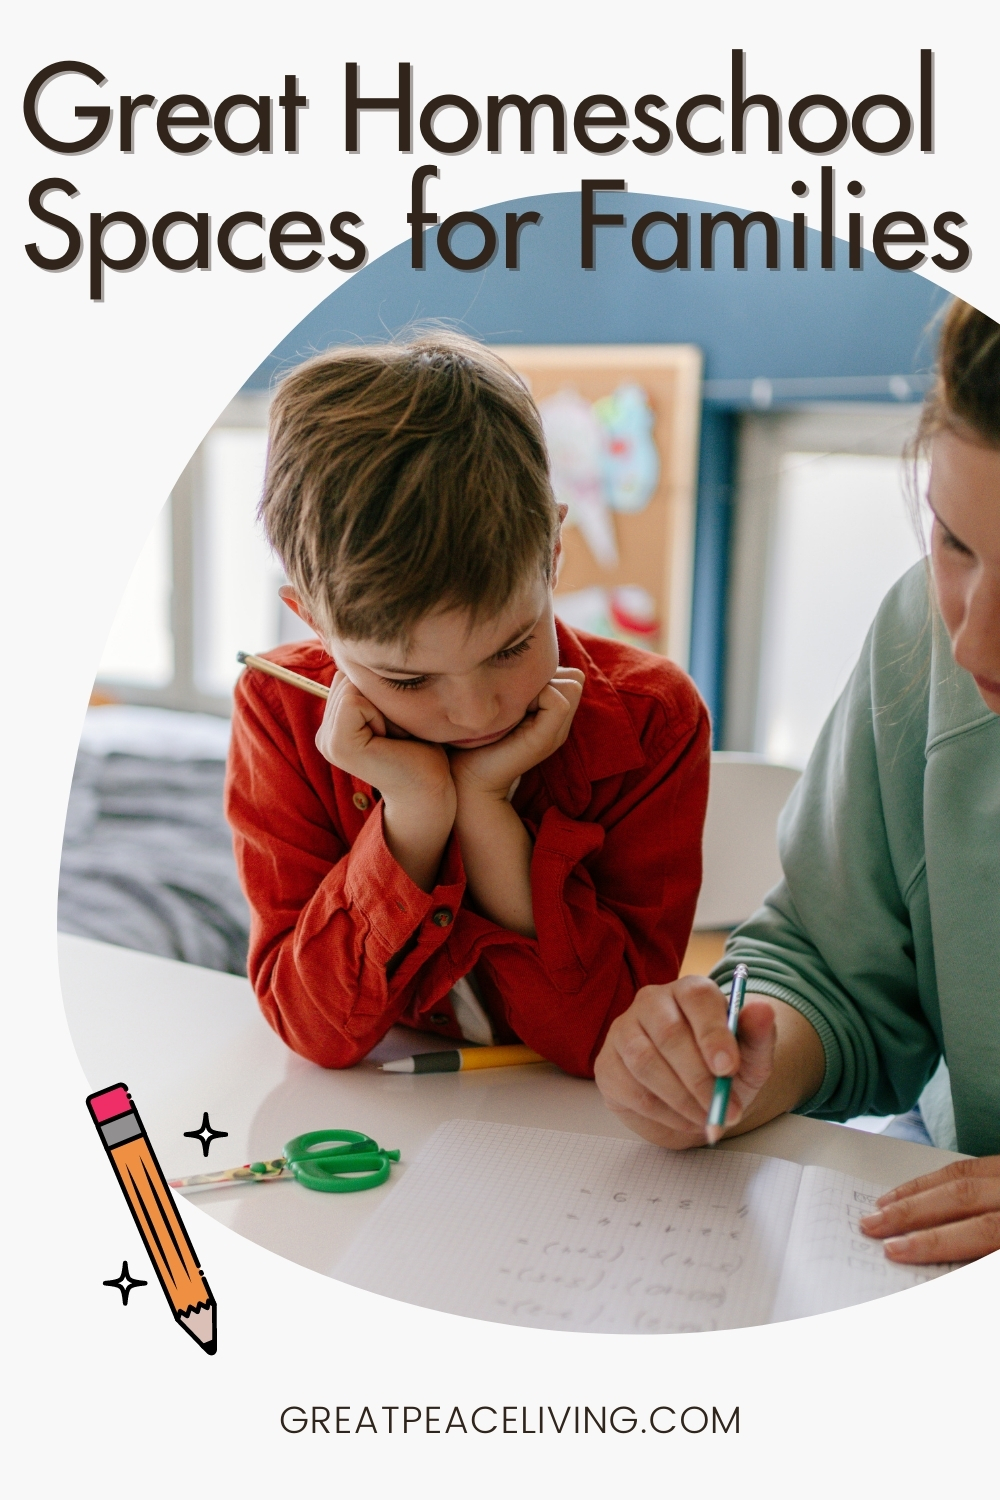 Great Homeschool Spaces for Families